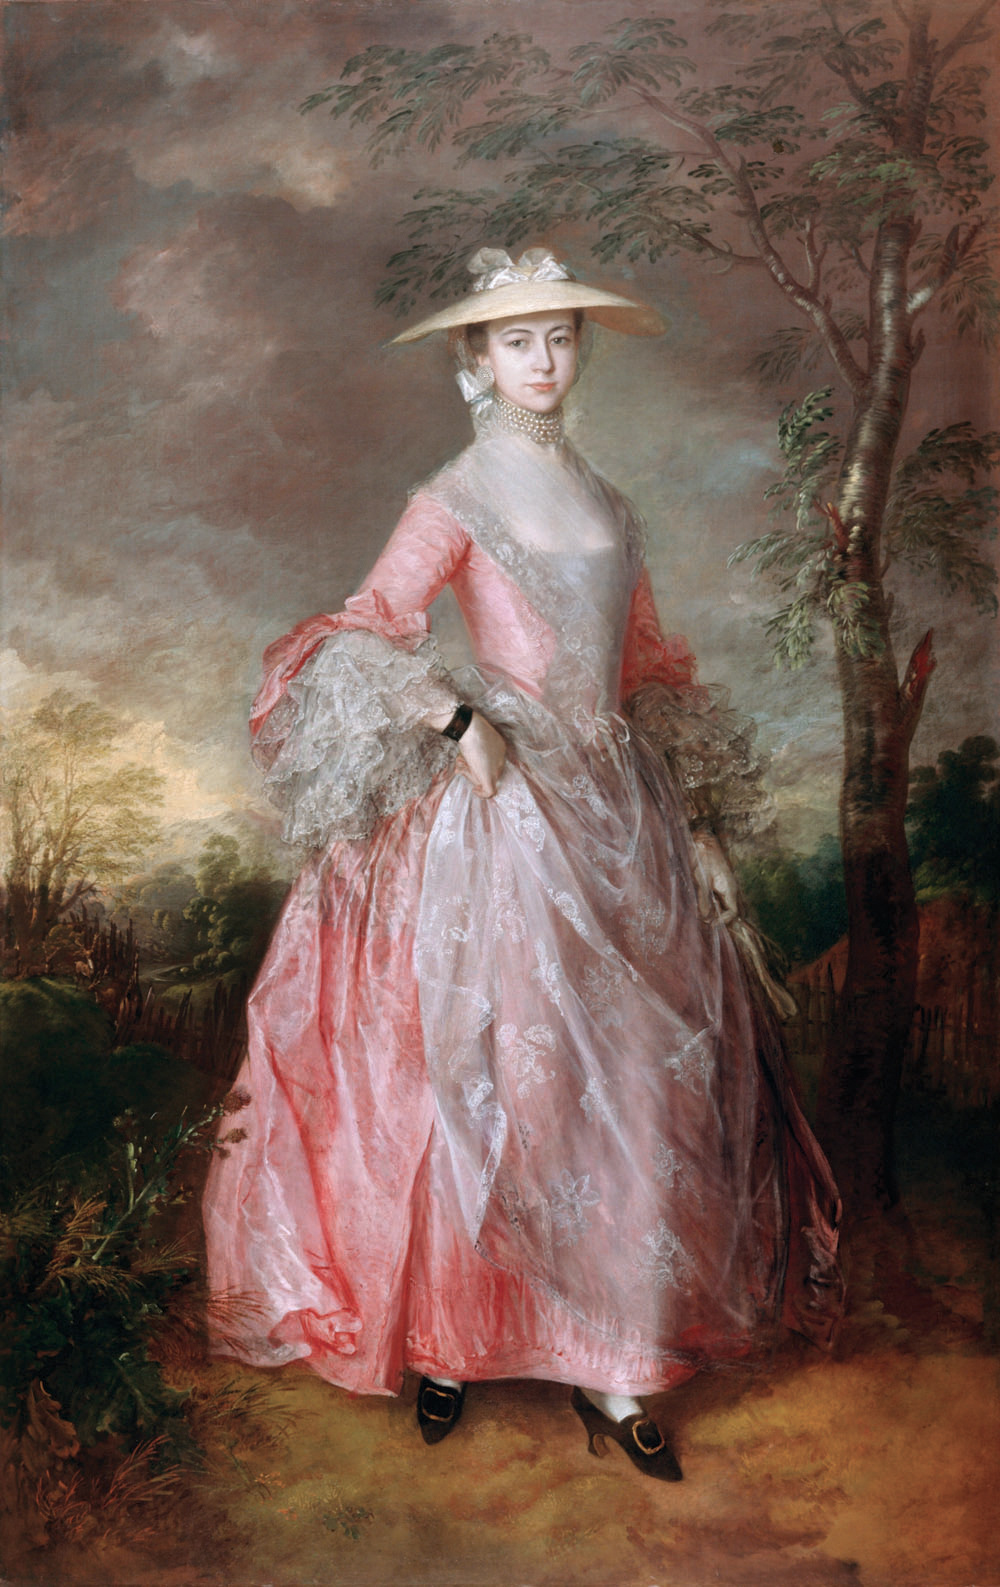 Thomas Gainsborough. Portrait of Mary Countess Howe